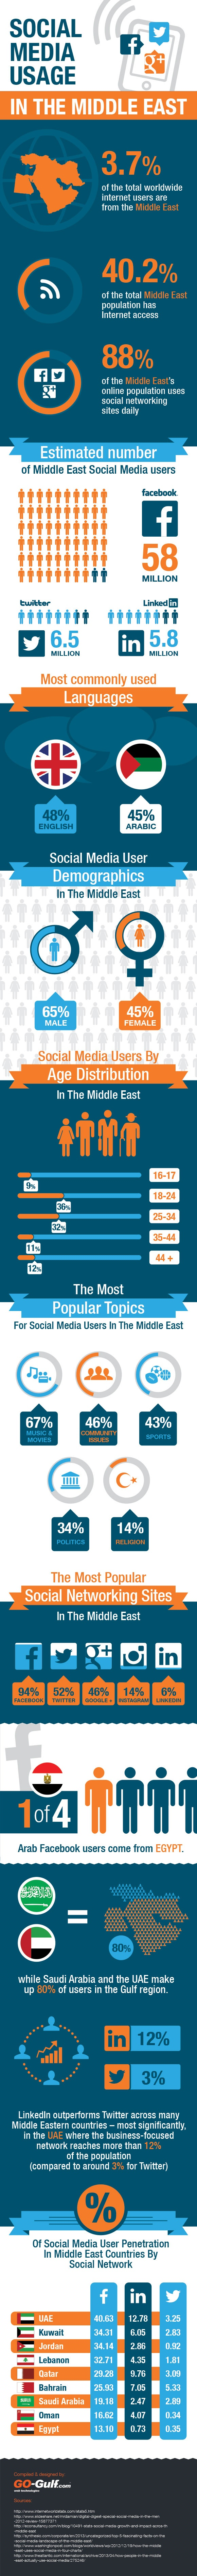 social media is being used throughout the Middle East.